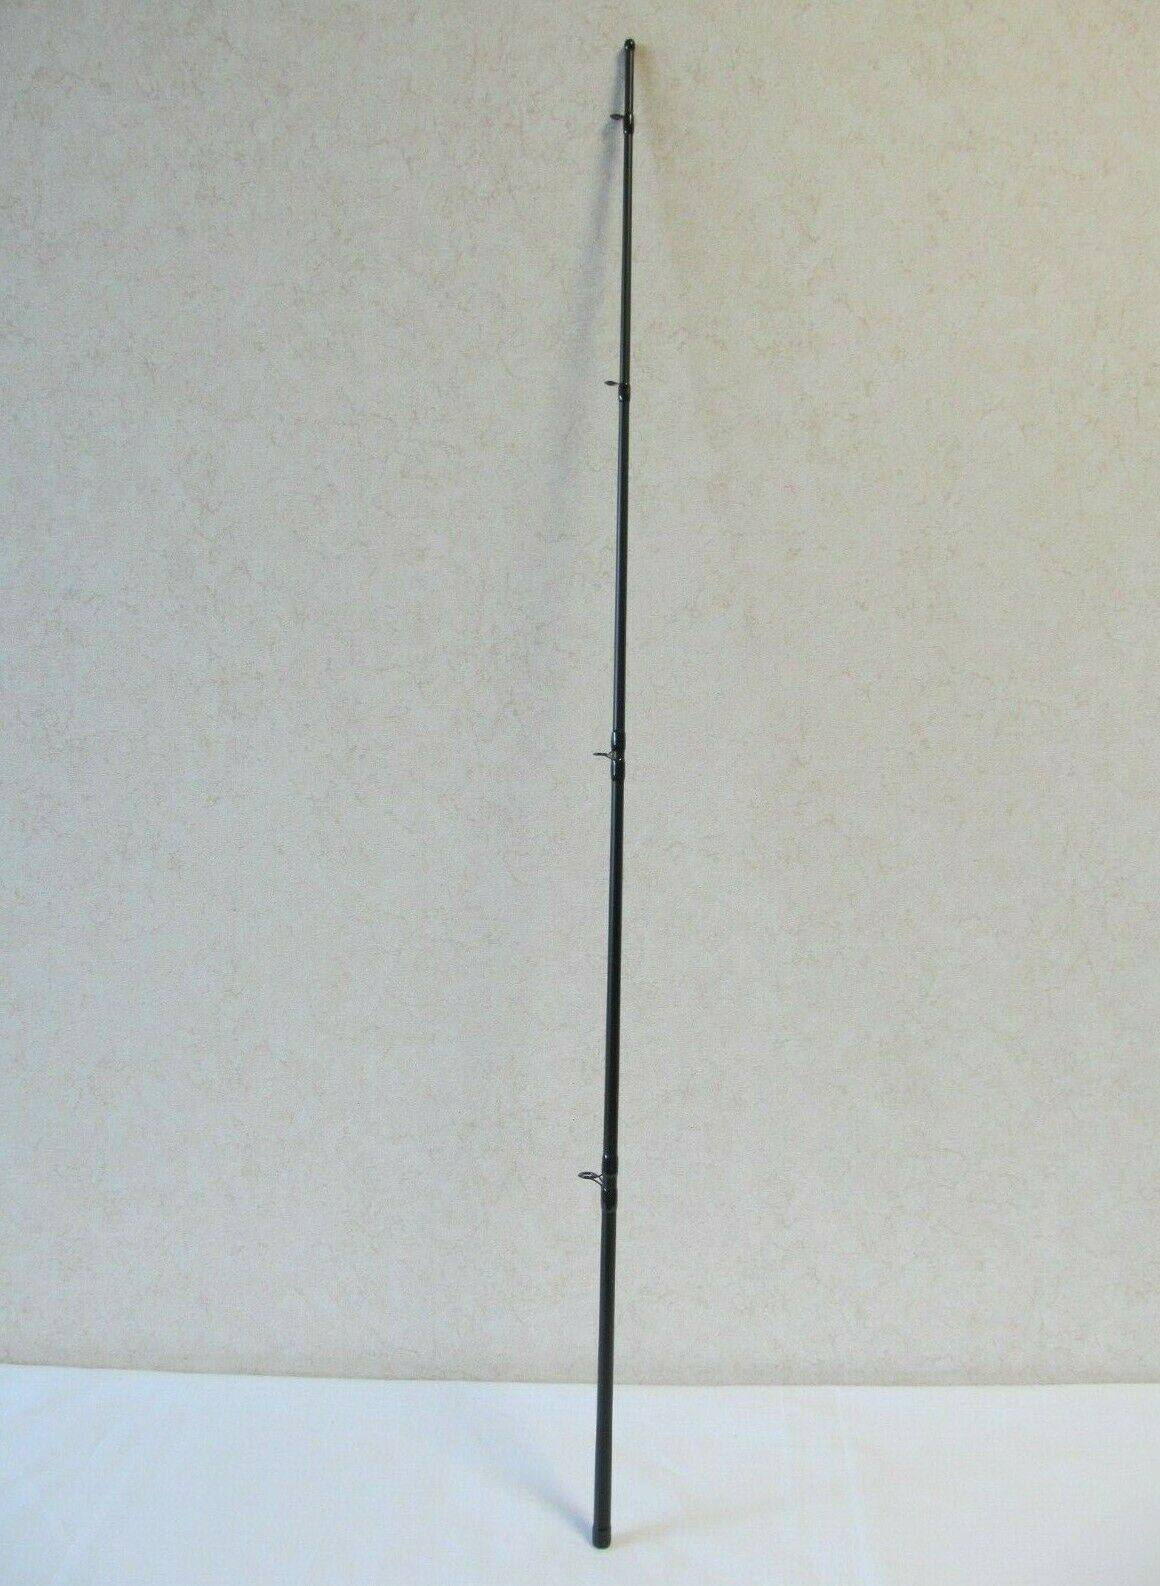 SHIMANO BEASTMASTER CX MED-HEAVY FEEDER ROD 12-14ft SPARE CARRIER SECTION (2013)